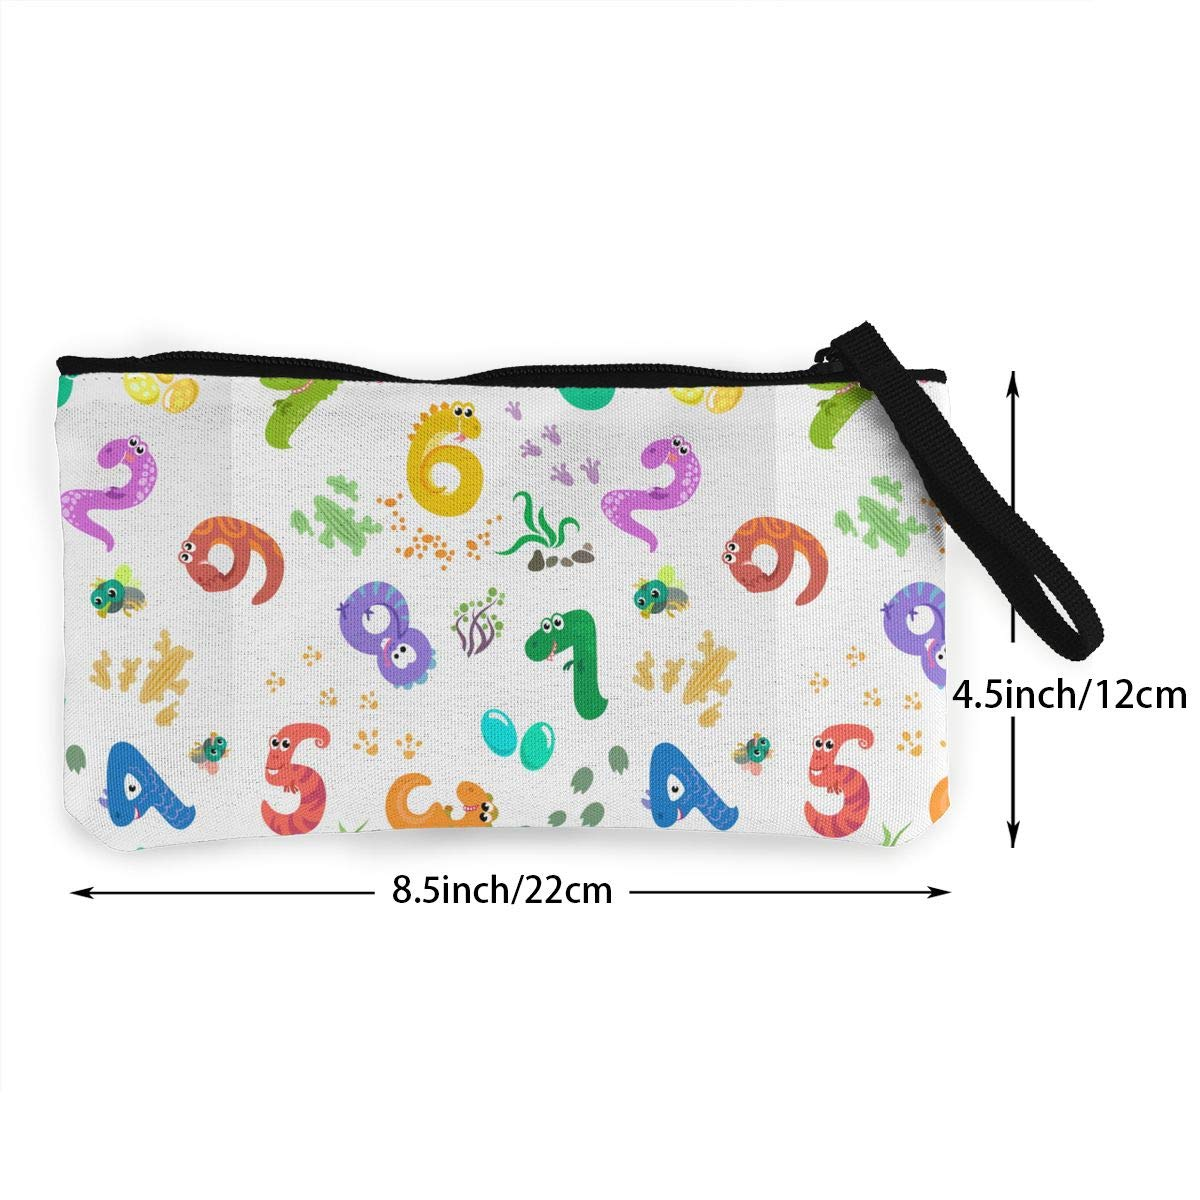 Zipper Small Purse Wallets Cellphone Clutch Purse With Wrist Strap Numbers Like Dinosaurs Pattern Womens Canvas Coin Purse